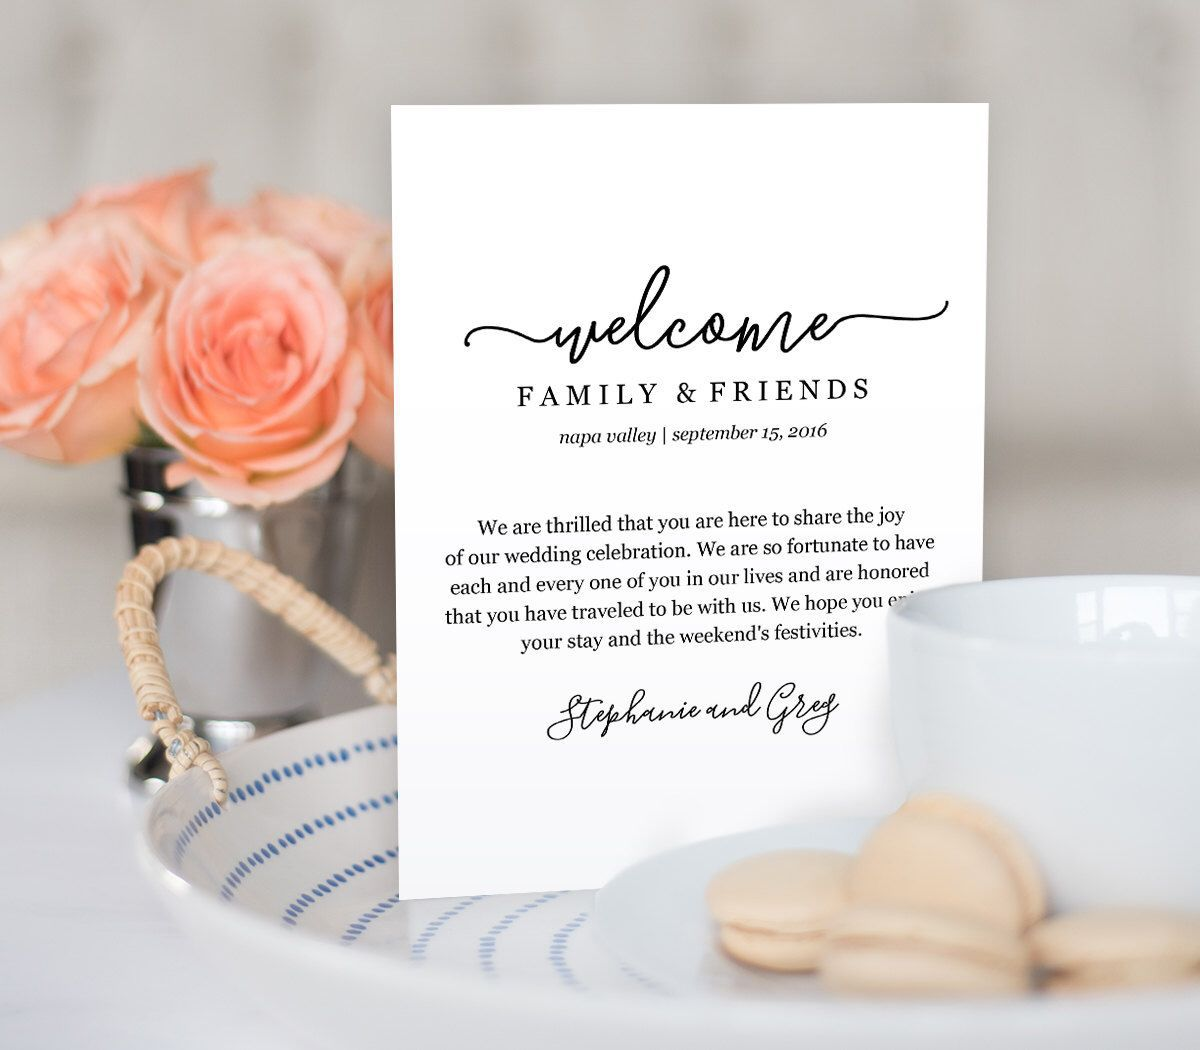 002 Amazing Wedding Gift Bag Welcome Letter Template. Design Full